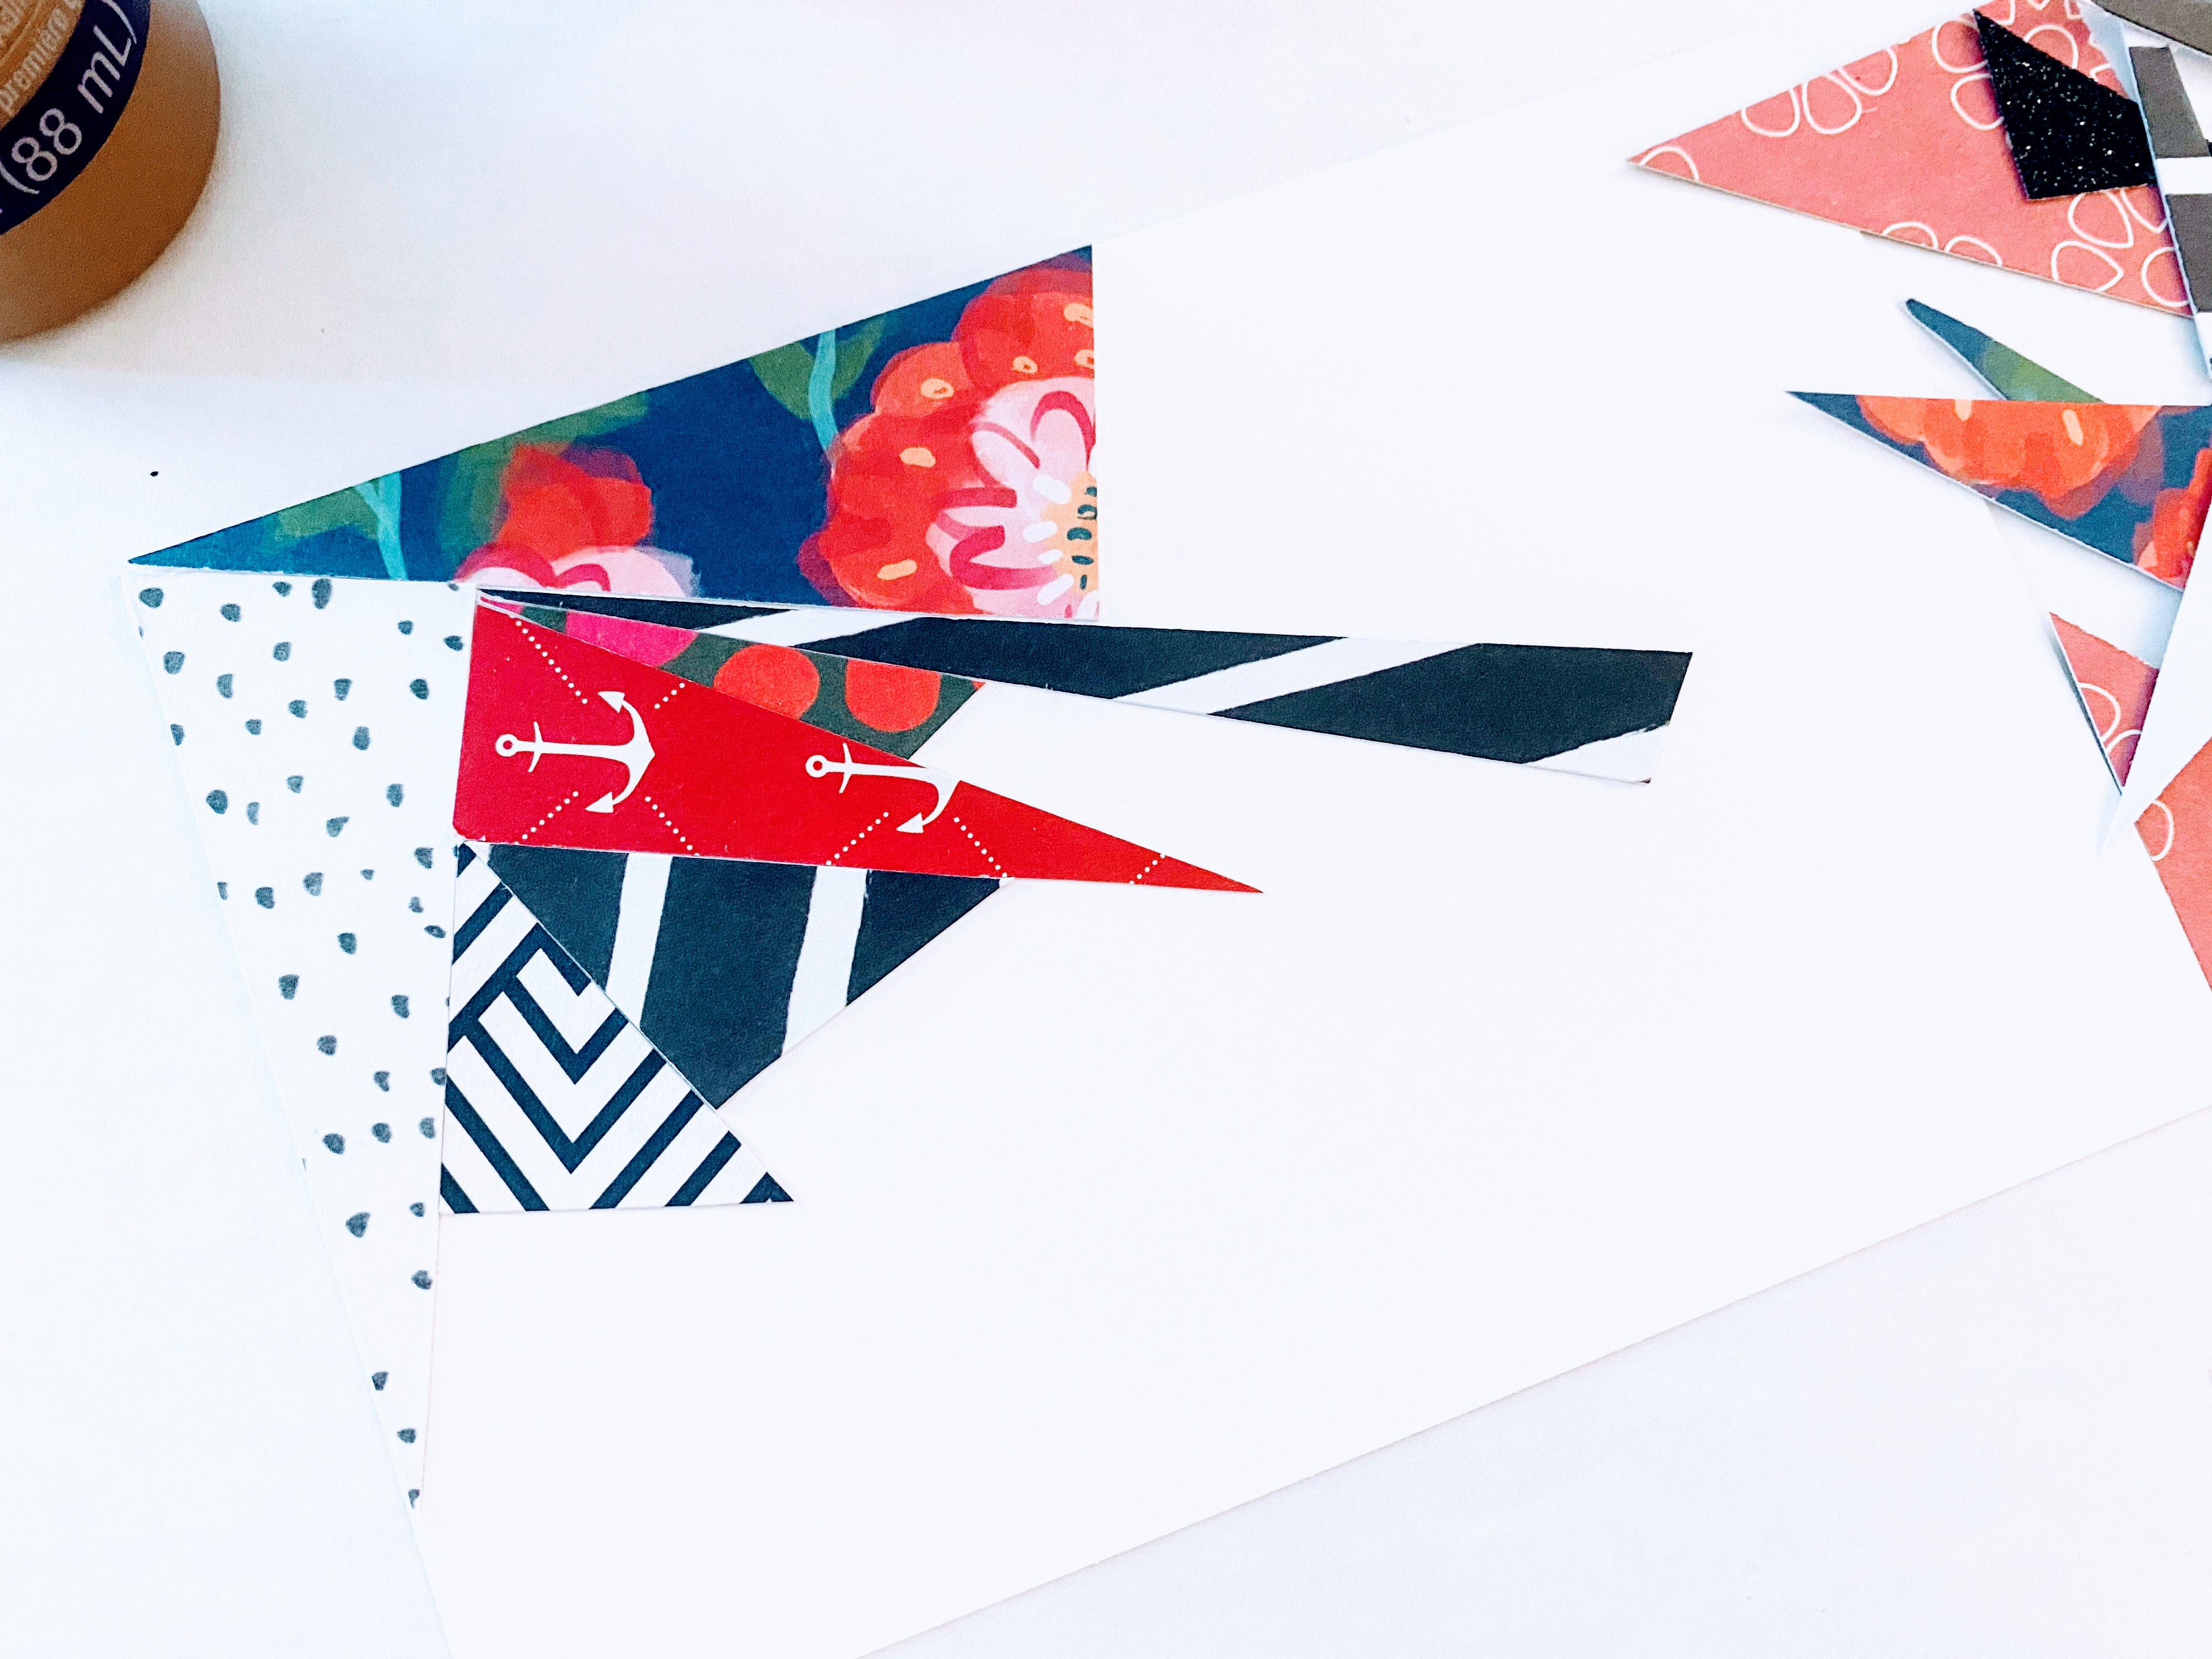 This image shows how we assembled the abstract art card.  We cut various triangles out and starting fitting pieces together.